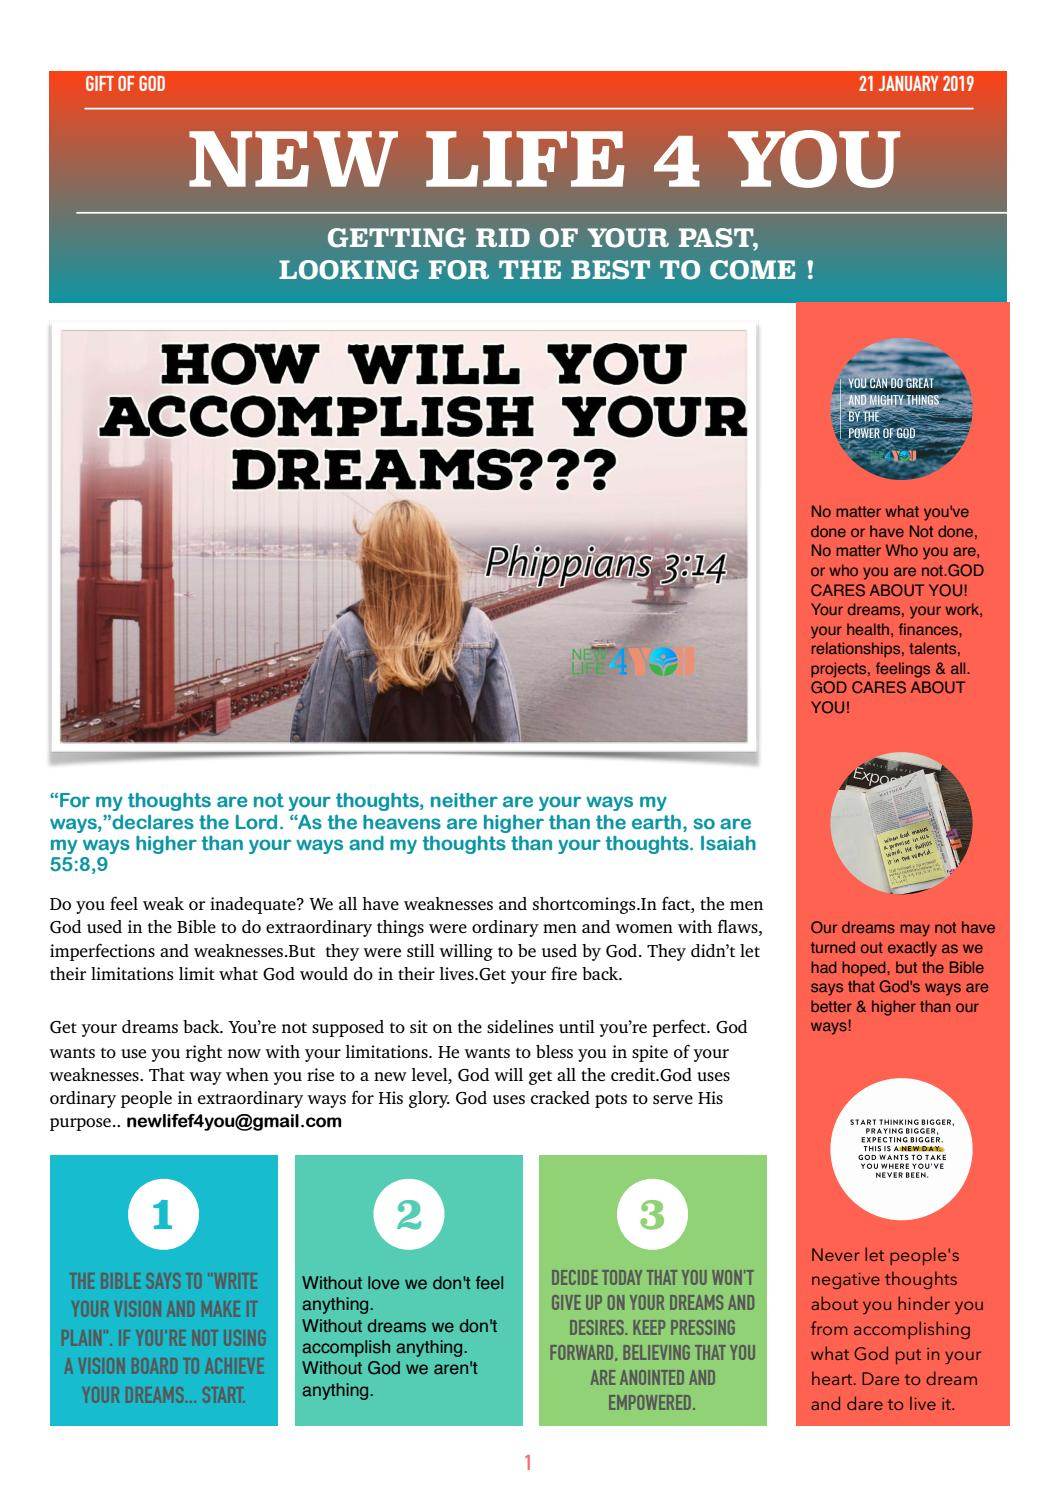 NEWLIFE4YOU JANUARY 21,2019 NEWSLETTER by New life For you